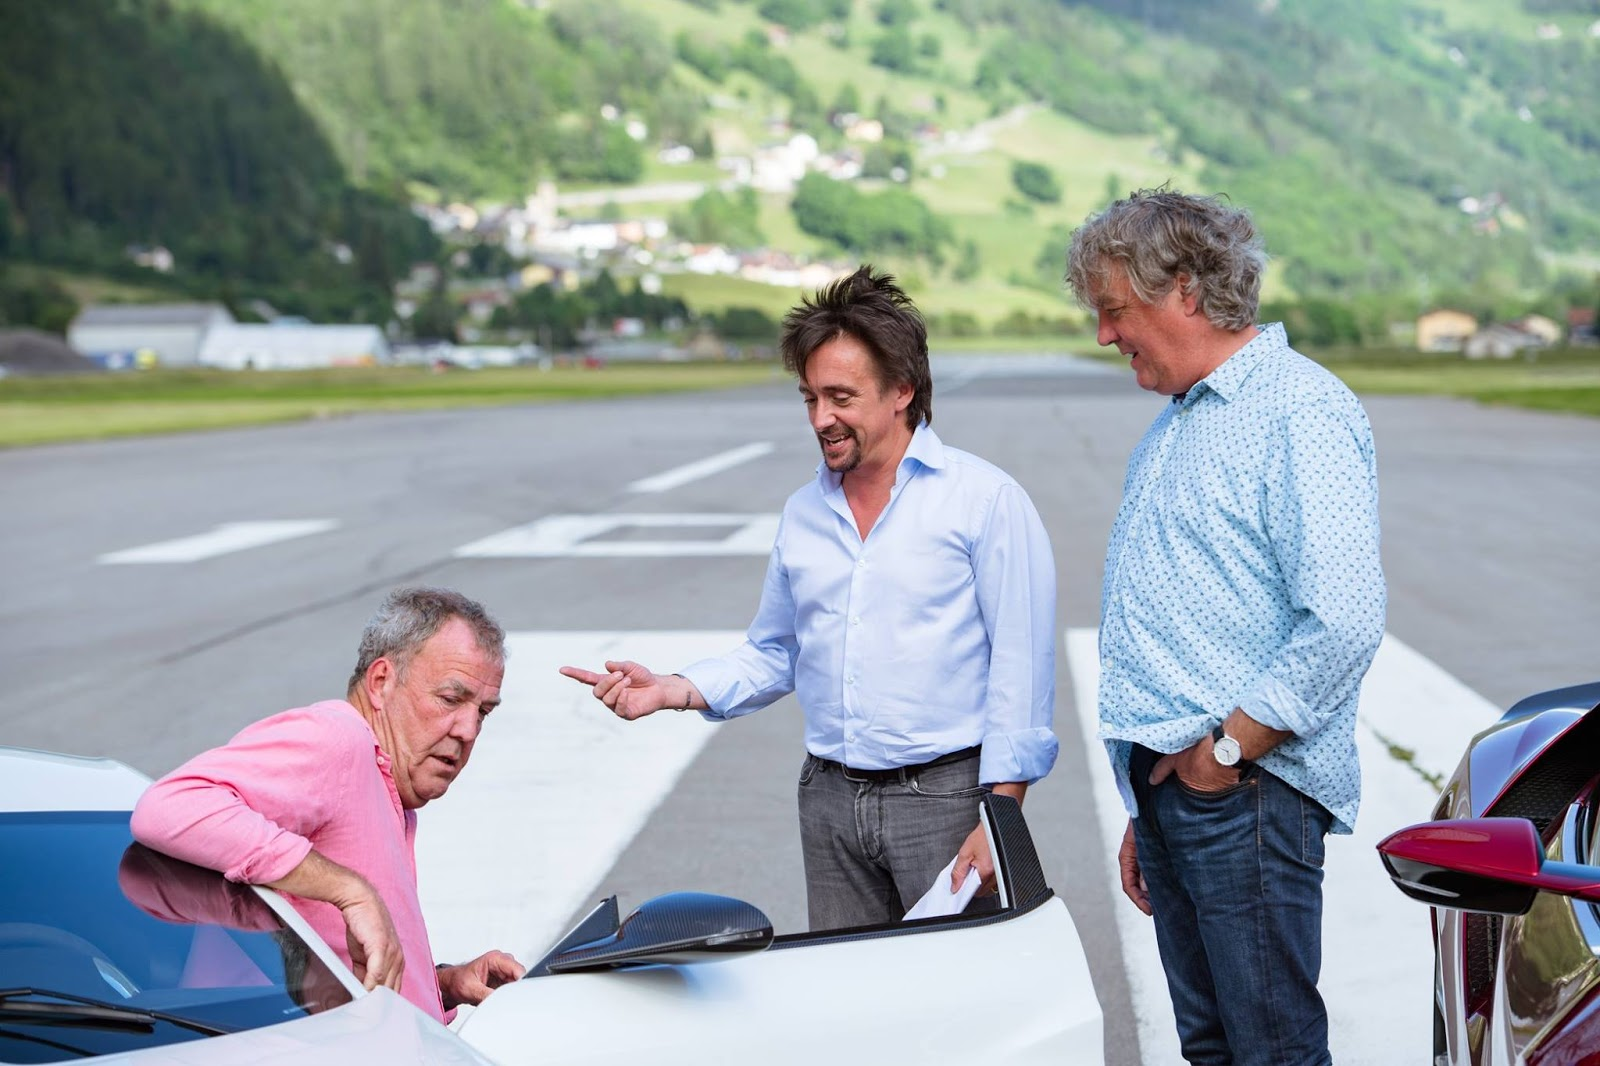 the grand tour 39 s opening episode to feature hammond 39 s rimac crash carscoops. Black Bedroom Furniture Sets. Home Design Ideas